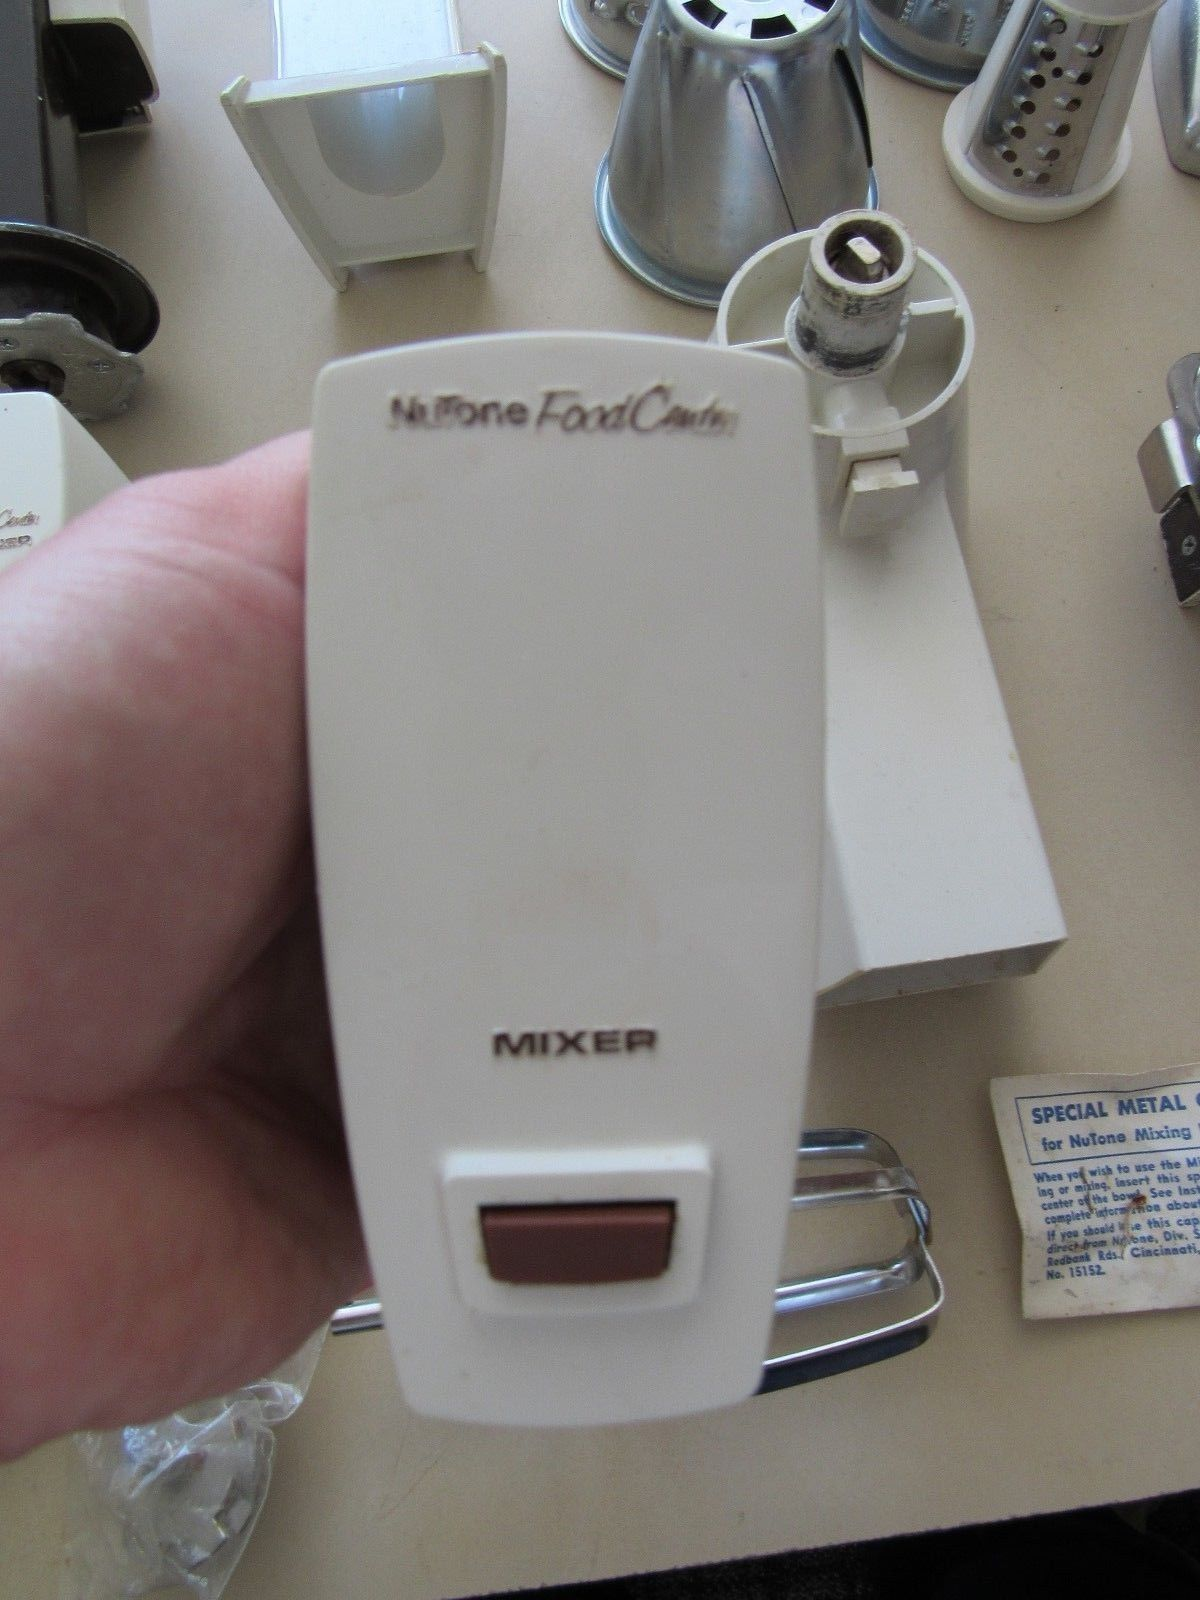 Nutone Food Center Appliance Multiple Attachments Sharpener Opener Grinder Lot